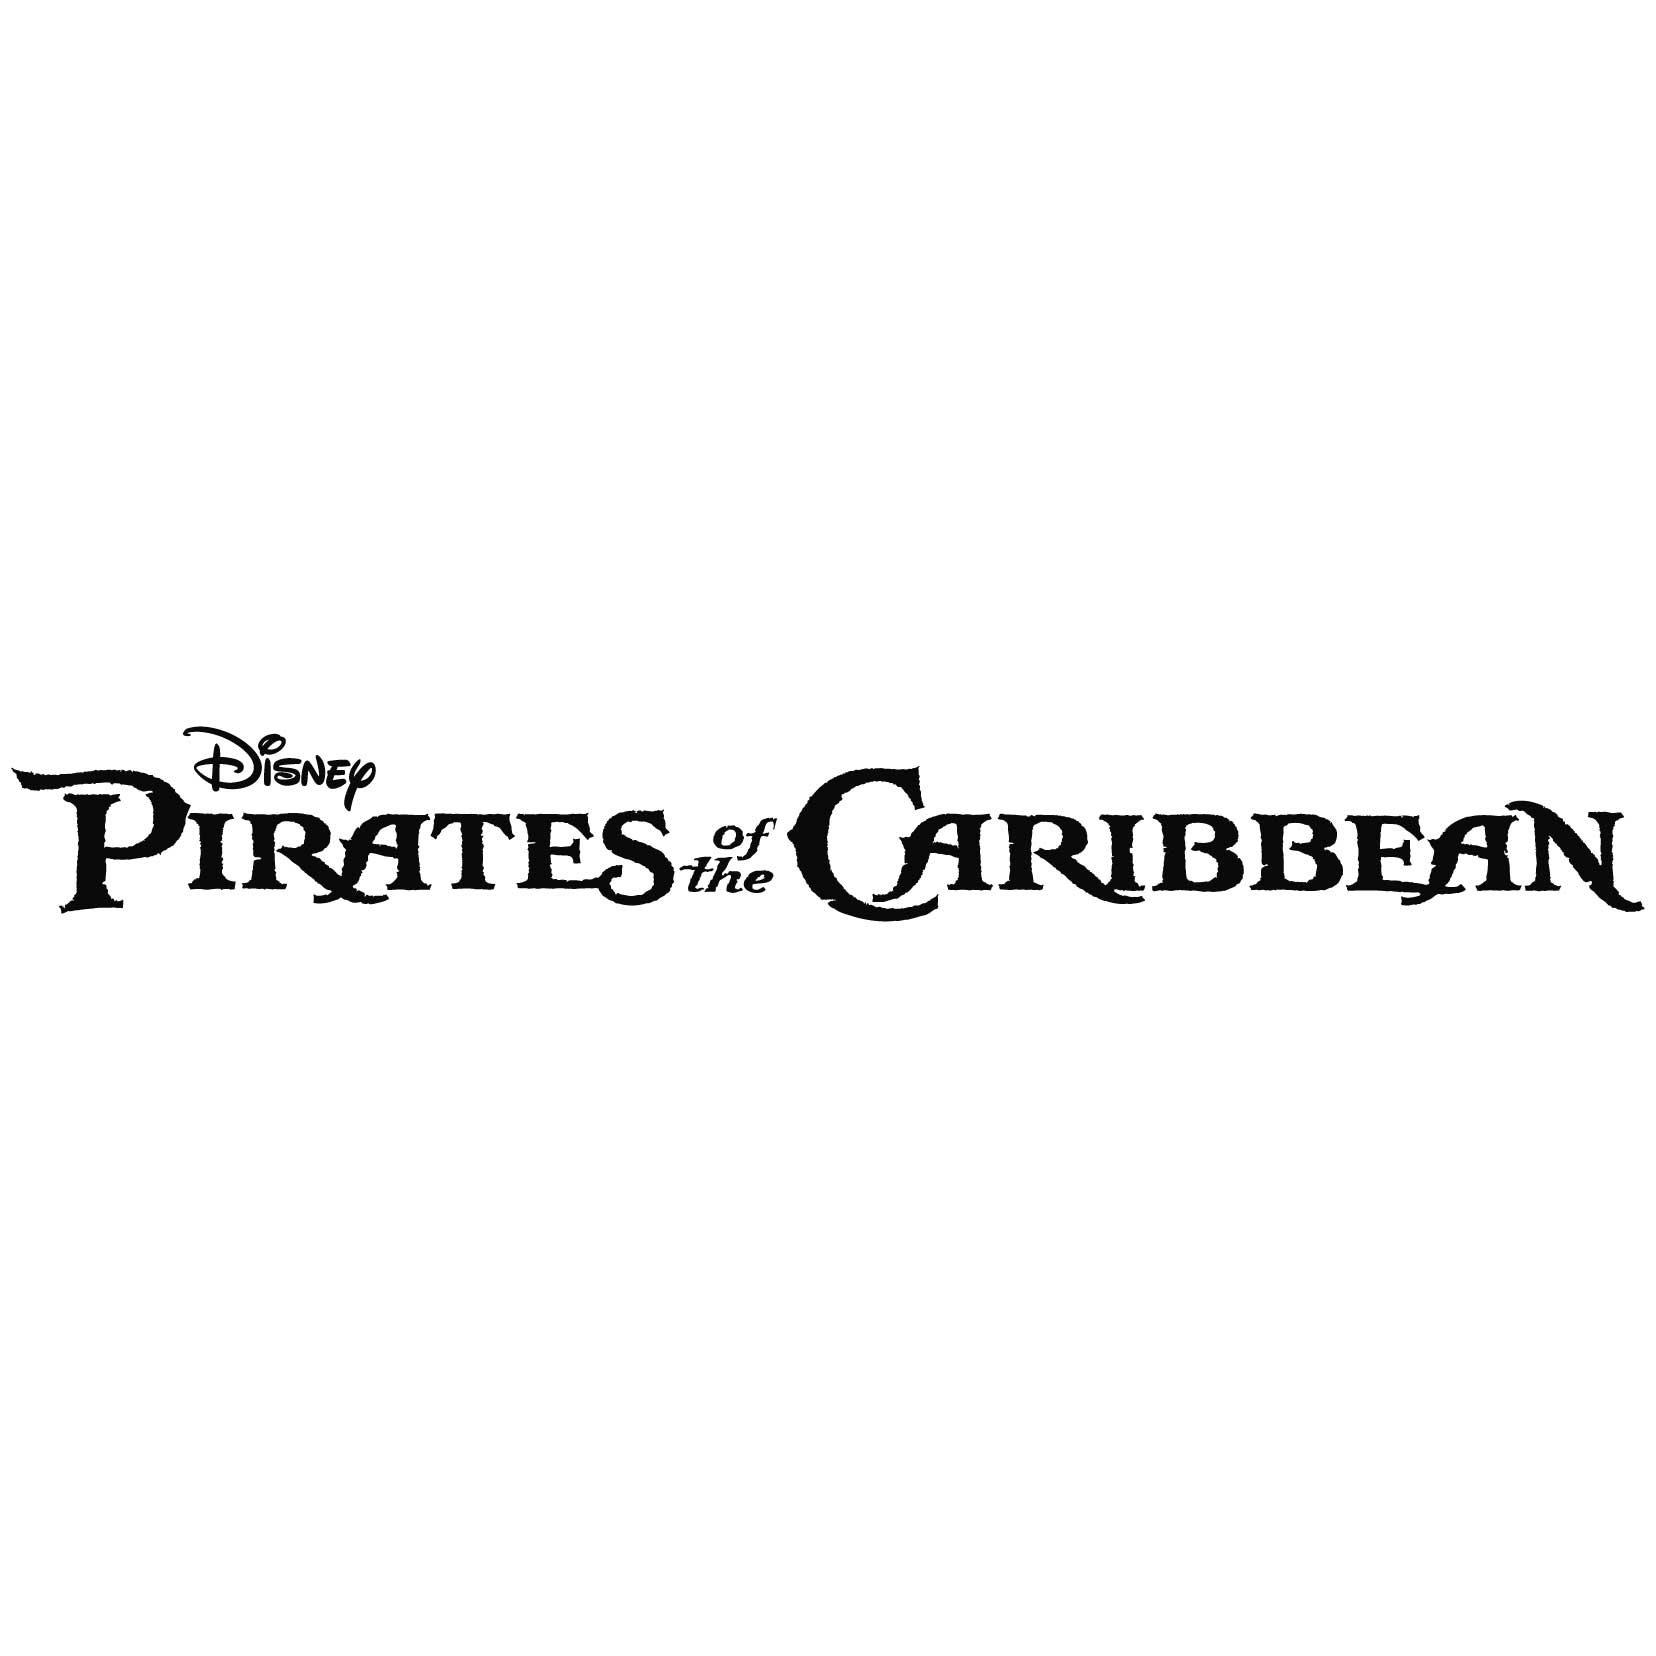 Pirate of the Carribean Logo Vinyl Decal Sticker - For wall, vehicle, computer, home decor (184x22 inch, Gloss Black)